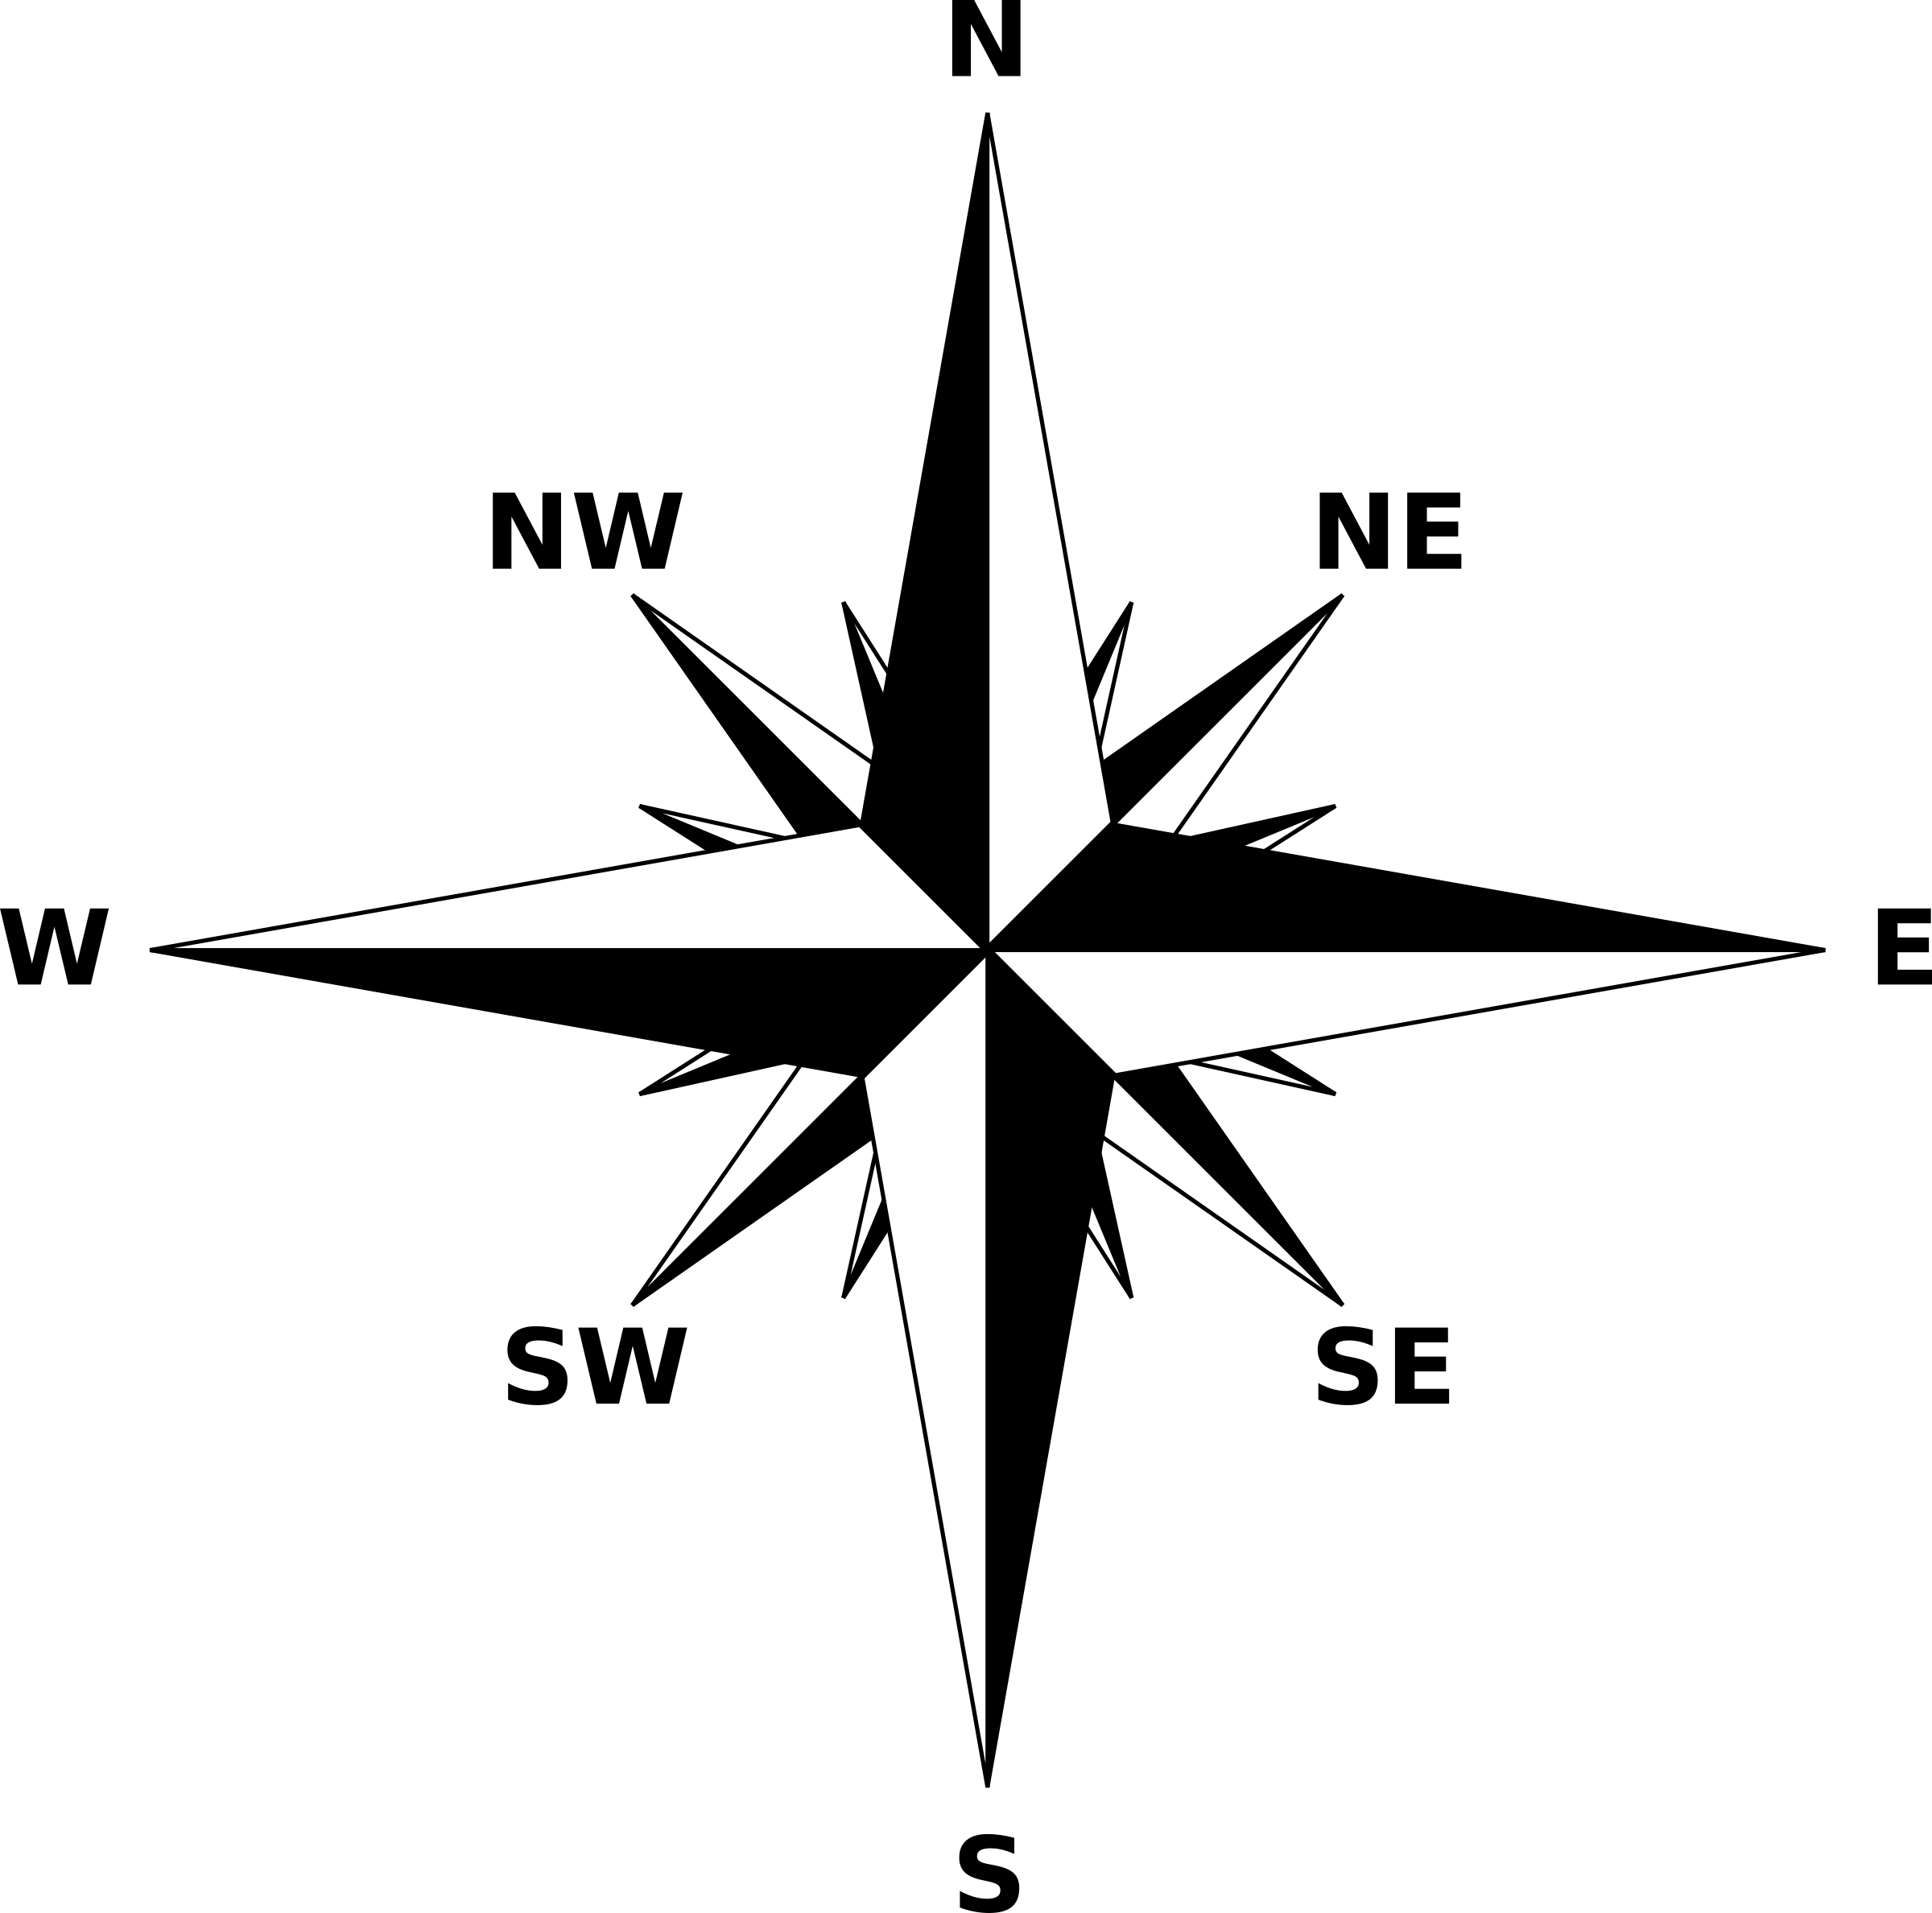 North star clipart black and white black and white download Black And White Compass Png Clipart - 1354 - TransparentPNG black and white download